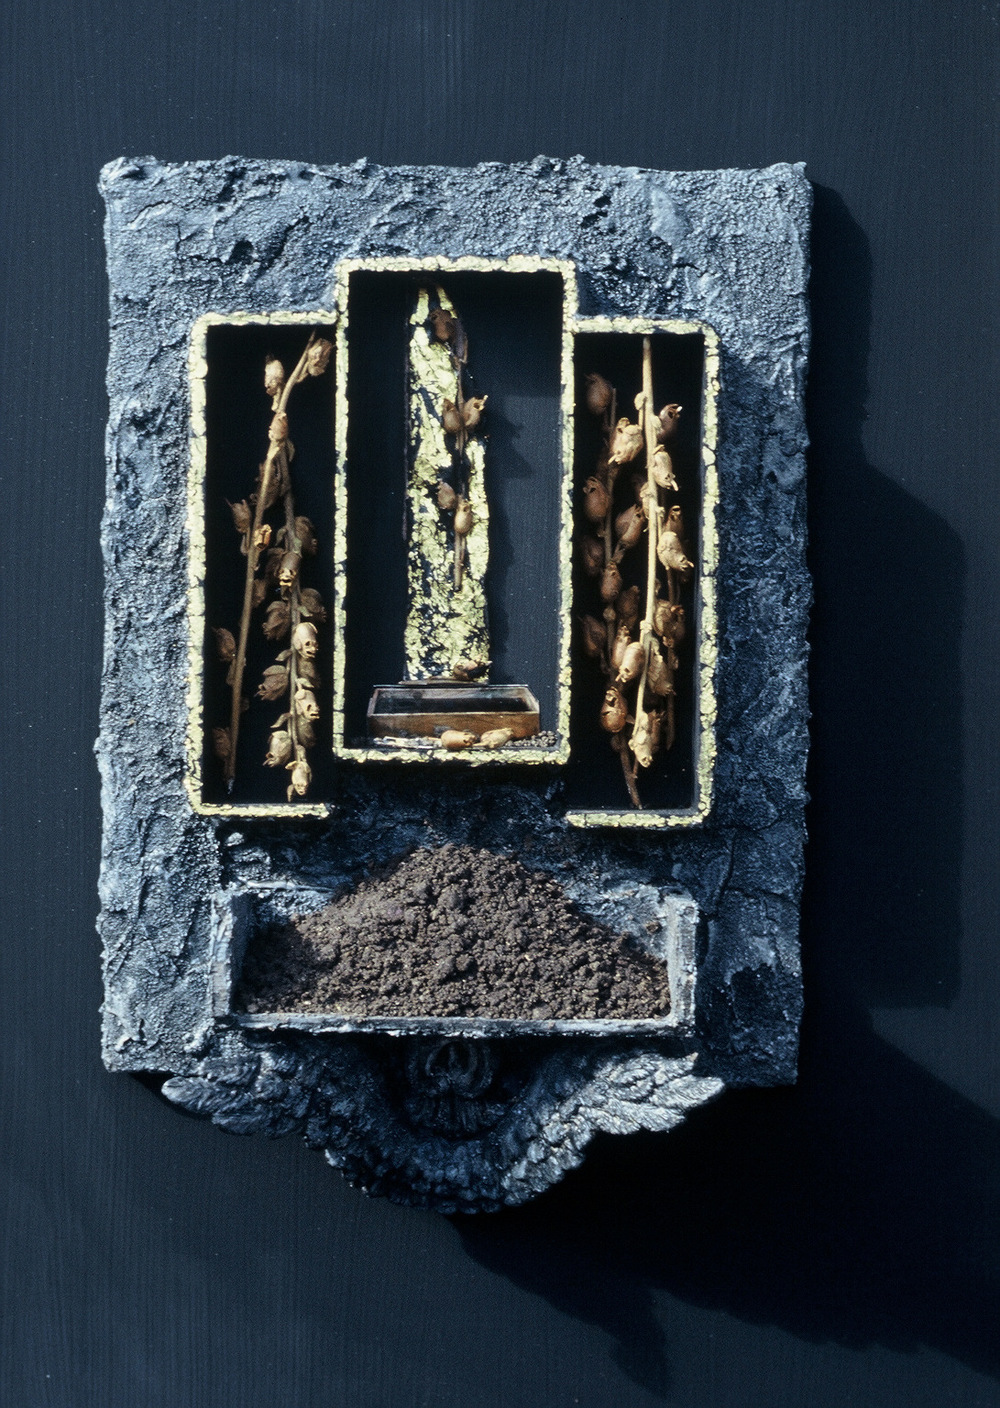 2bj(0) - Earth - paints, gold leaf, plants, soil, wood - 21x15.5x5 in = 1992.jpg